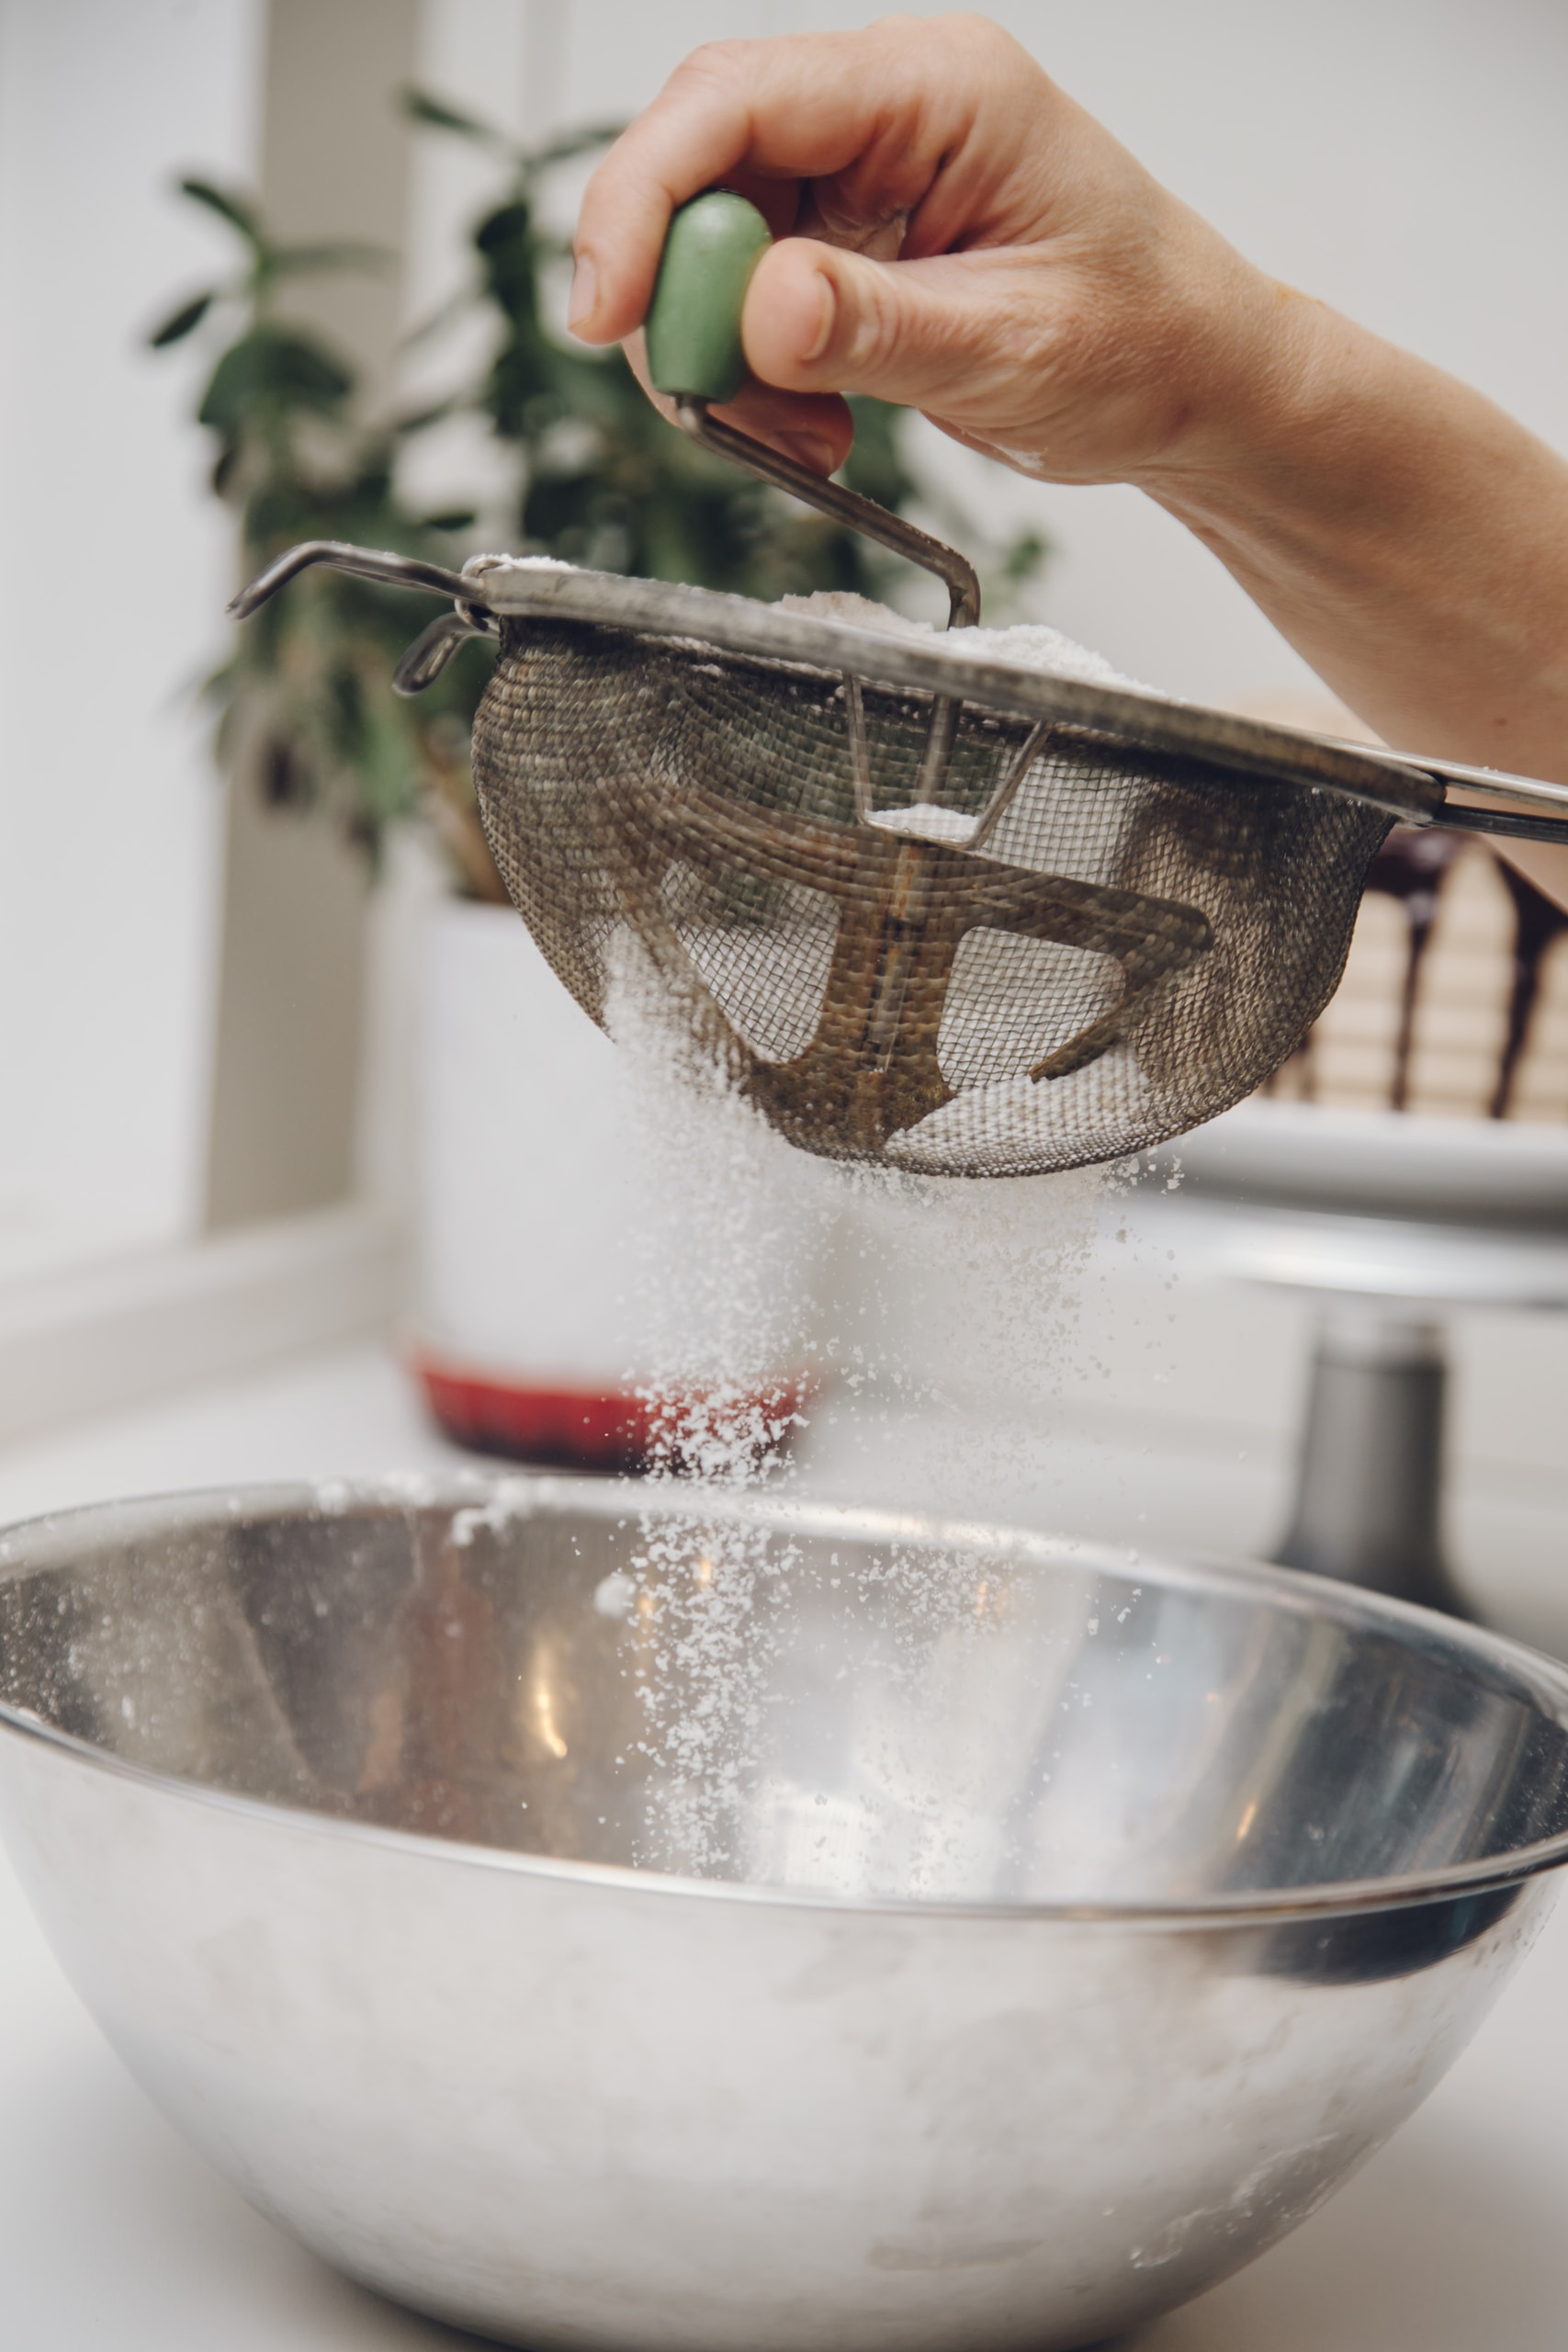 person filtering powder on round stainless steel bowl